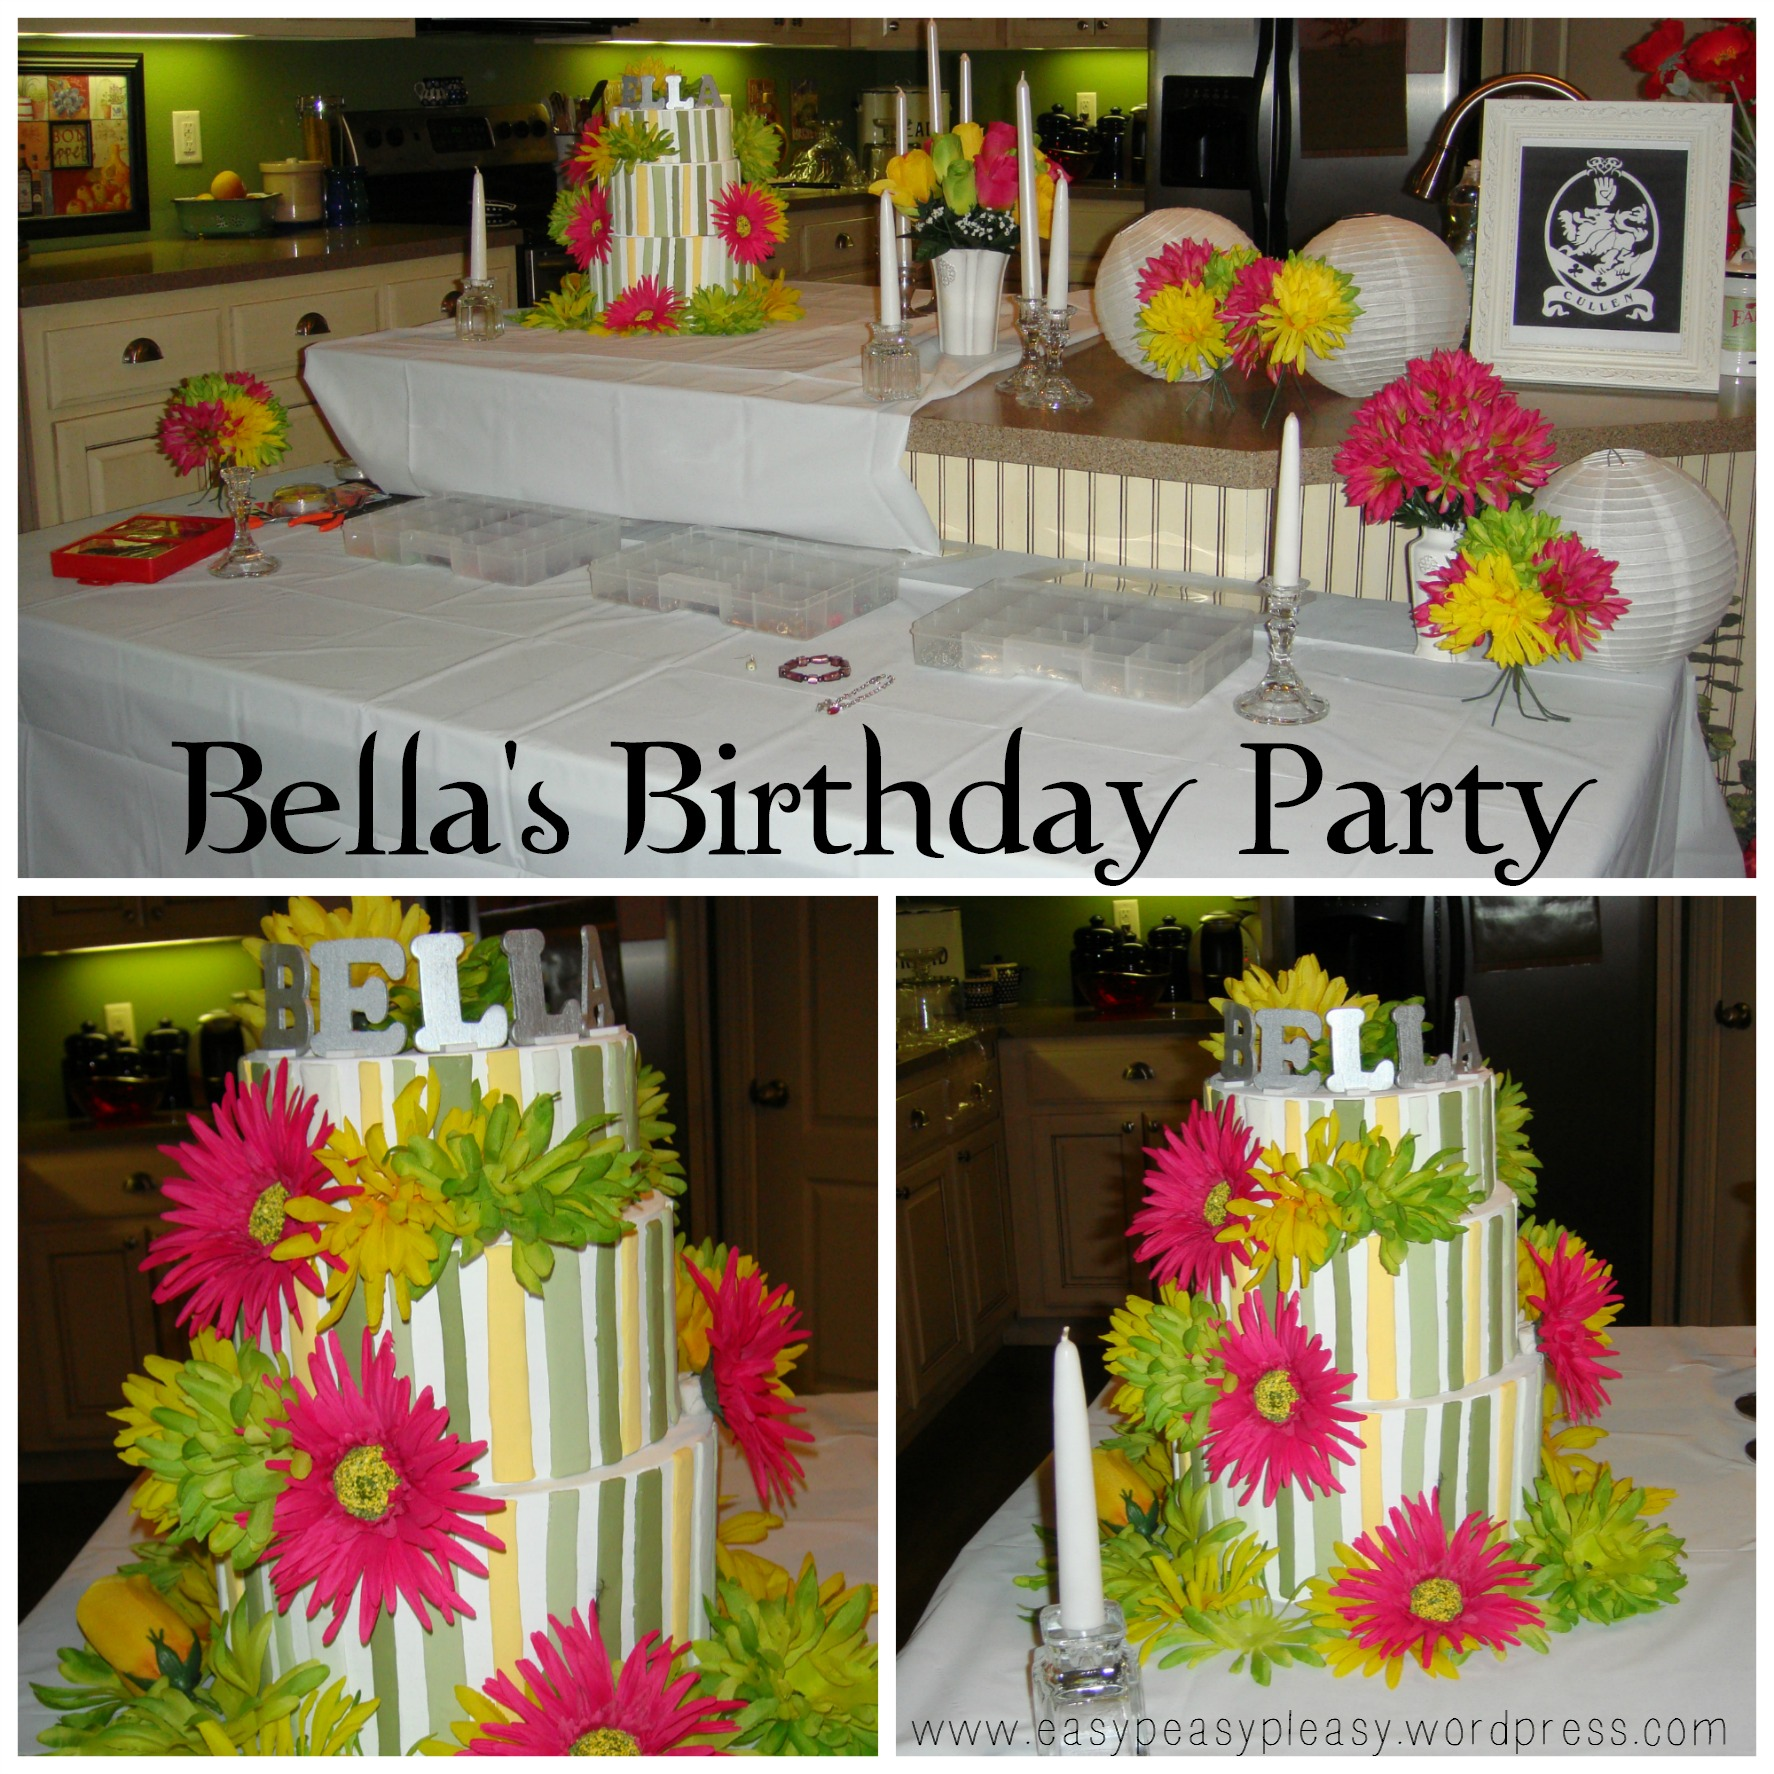 Twilight New Moon Bella's Birthday Party Decor